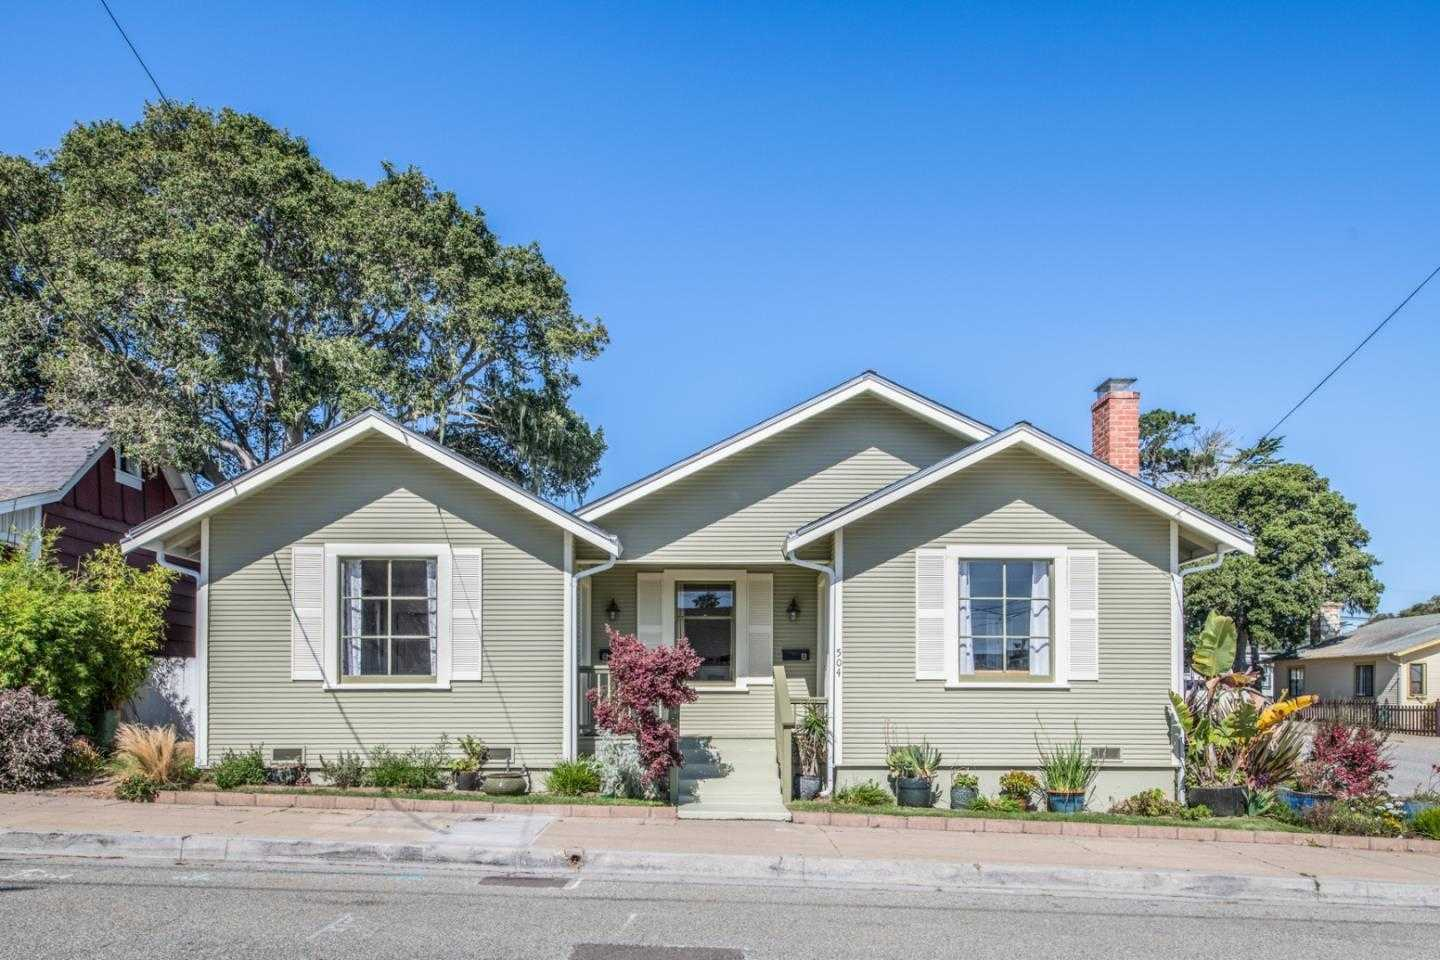 $1,015,000 - 3Br/3Ba -  for Sale in Pacific Grove